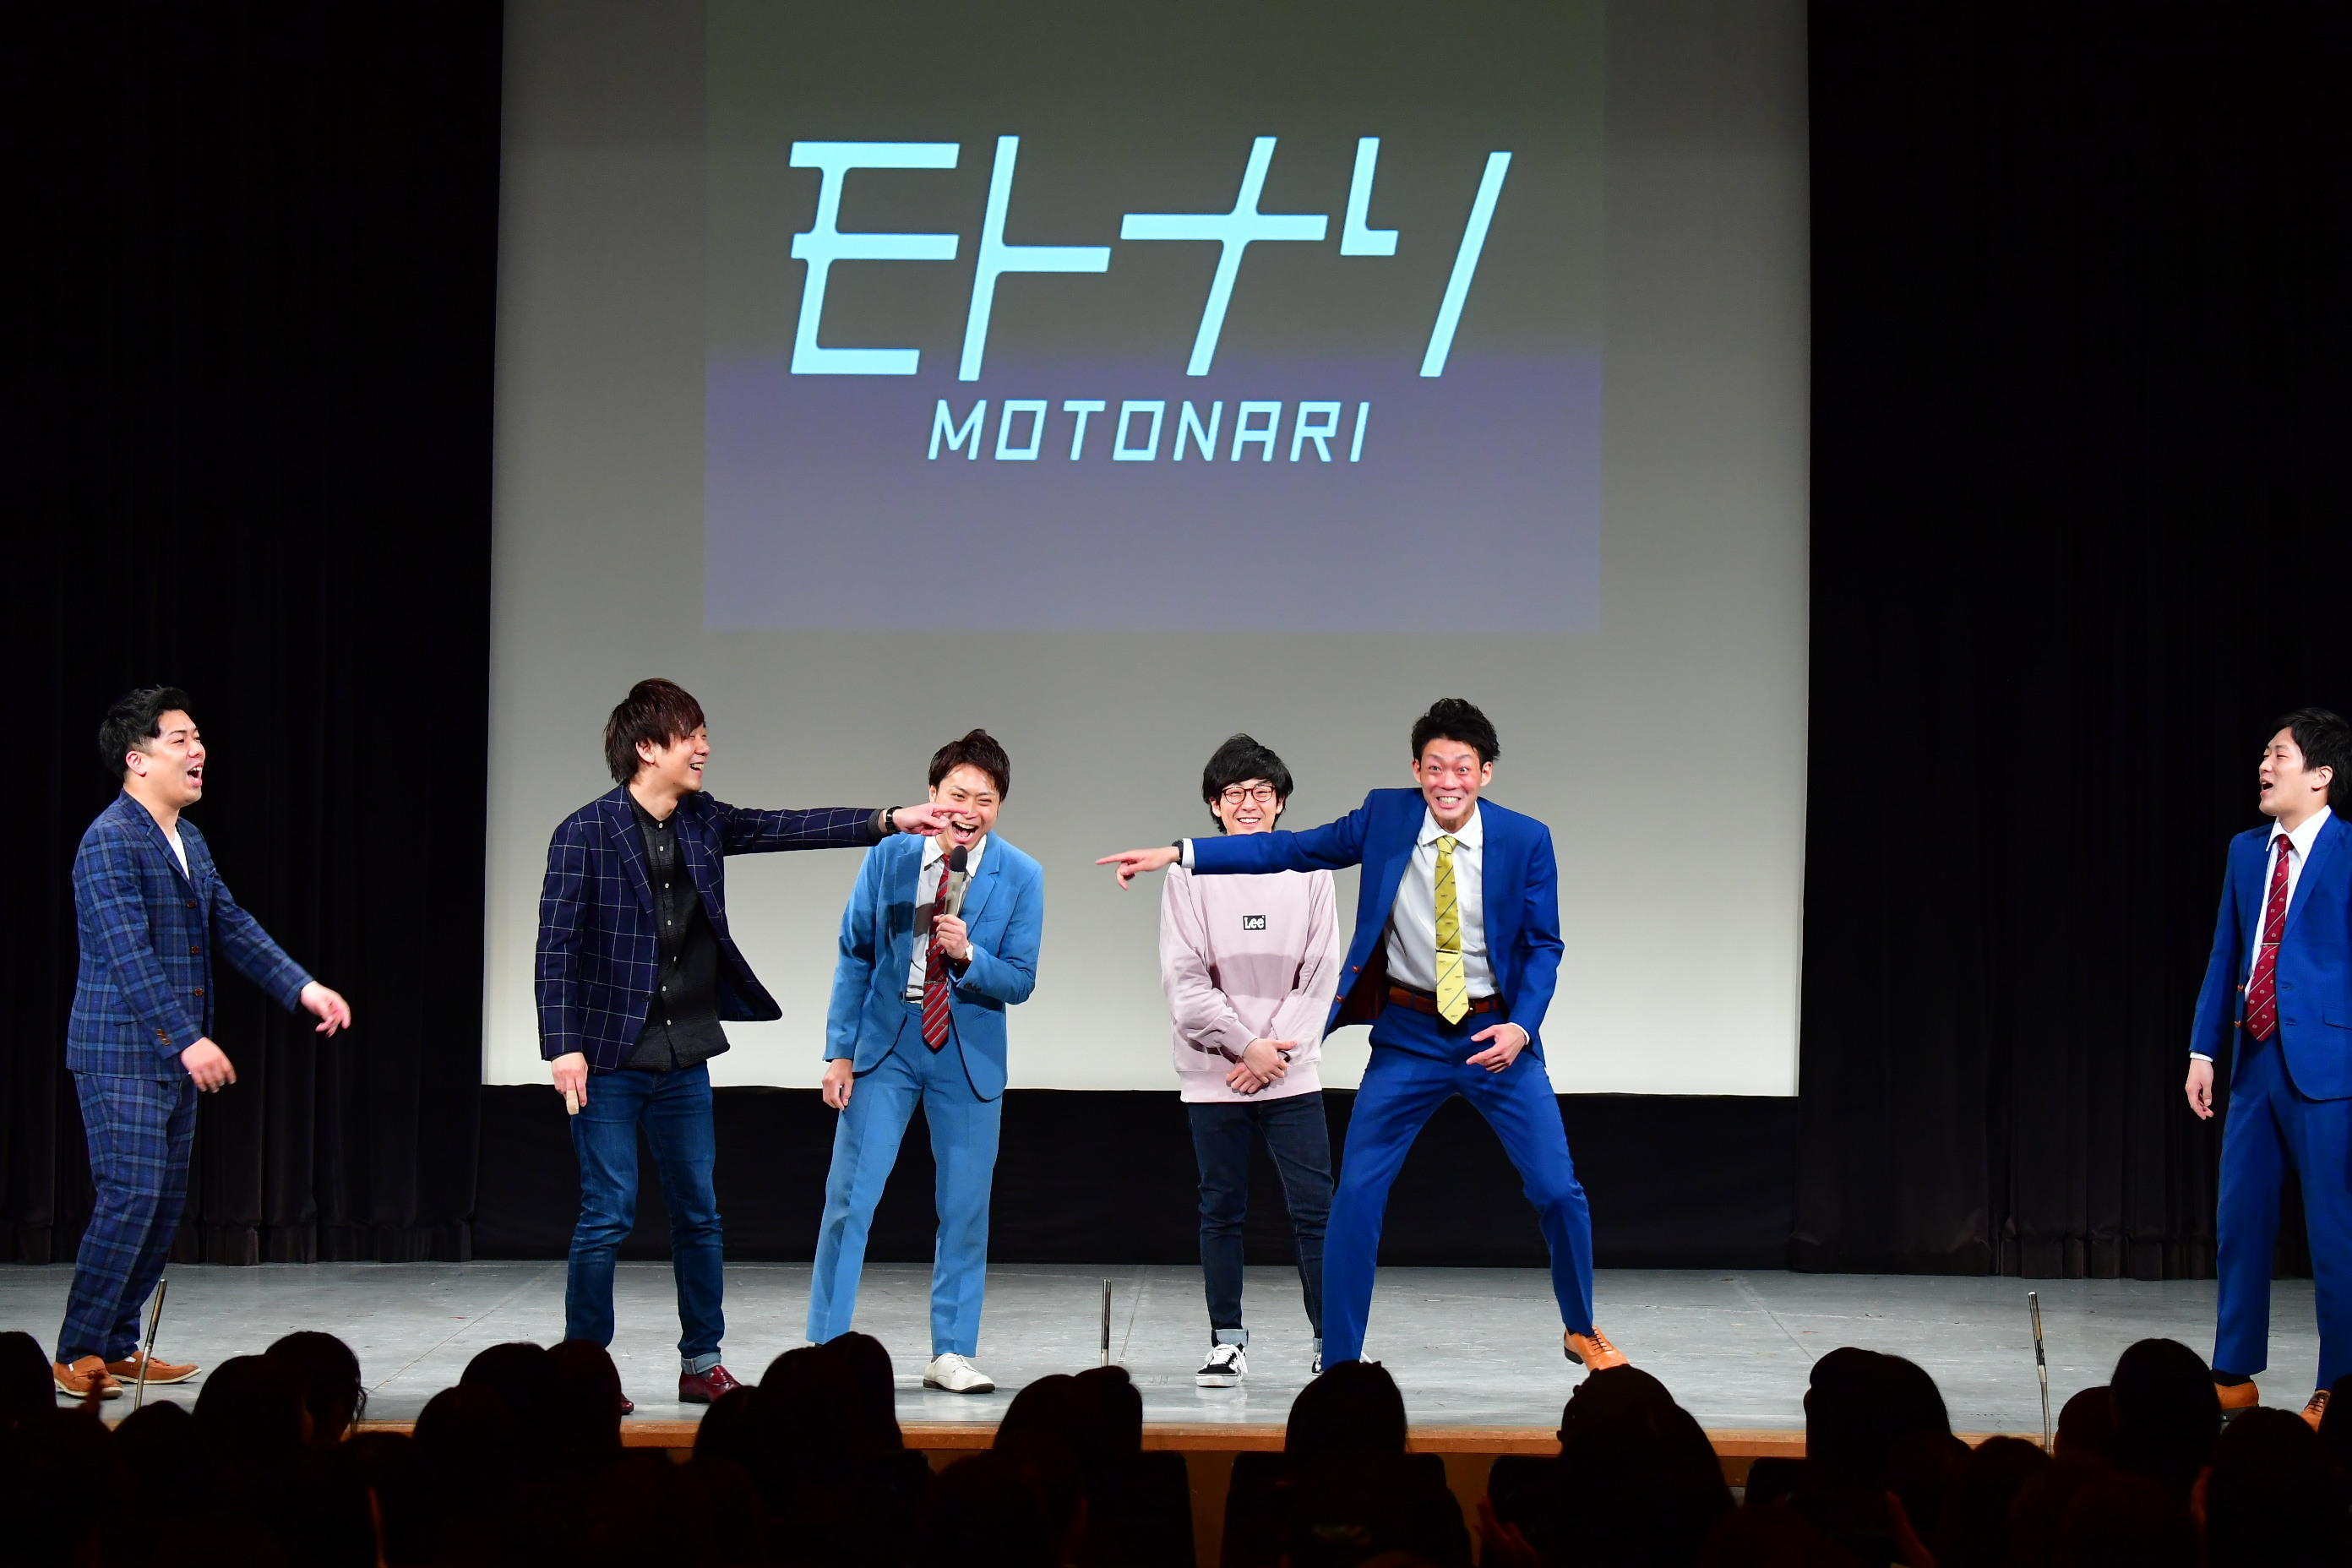 http://news.yoshimoto.co.jp/20180304001121-f7715d5f5ad8ae3f7f5715ababa0f5af599a24bc.jpg